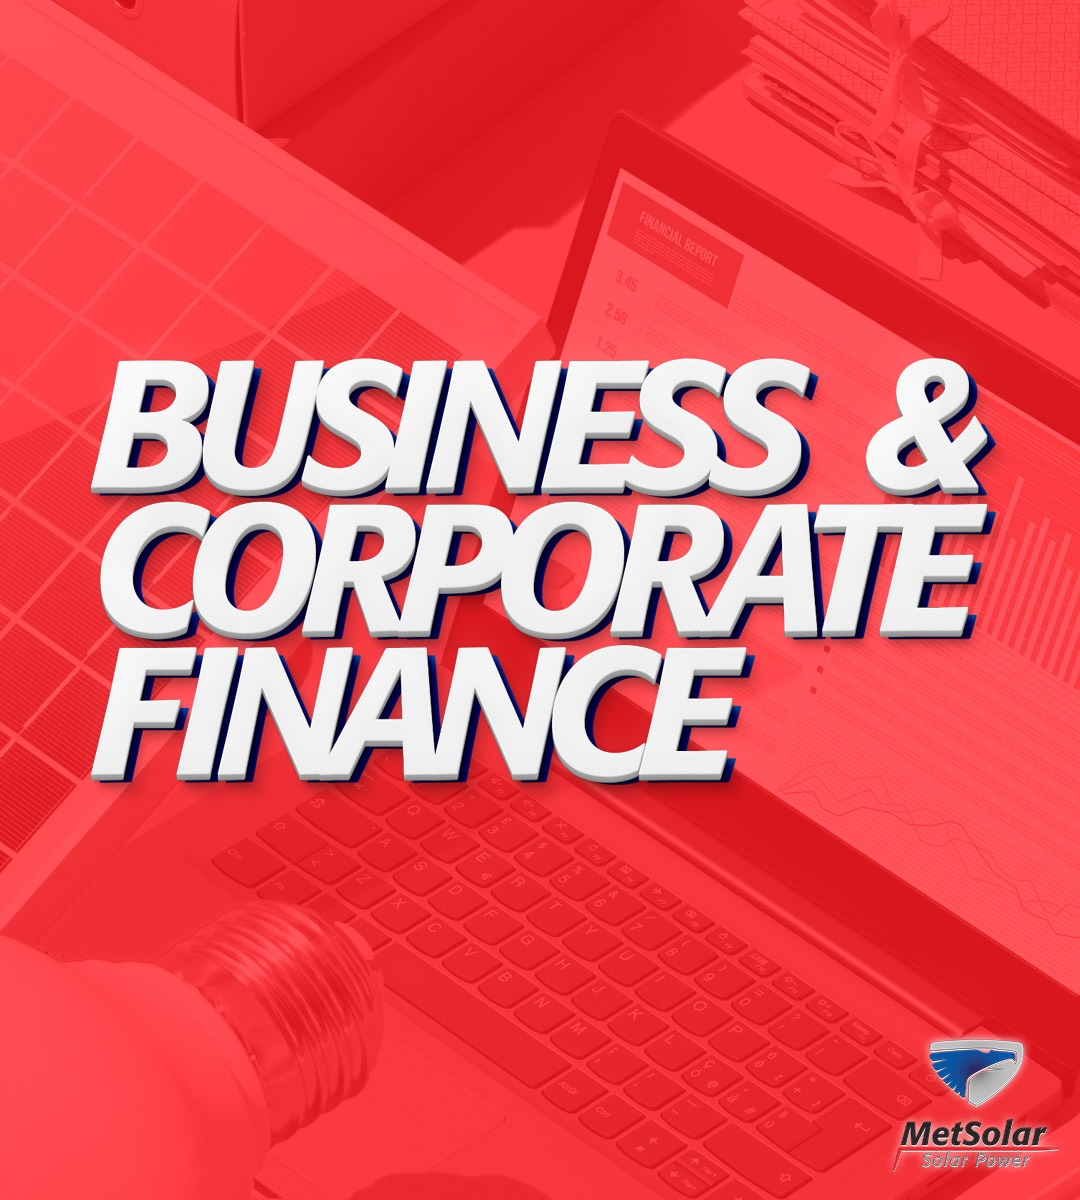 MetSolar Business and Corporate Finance